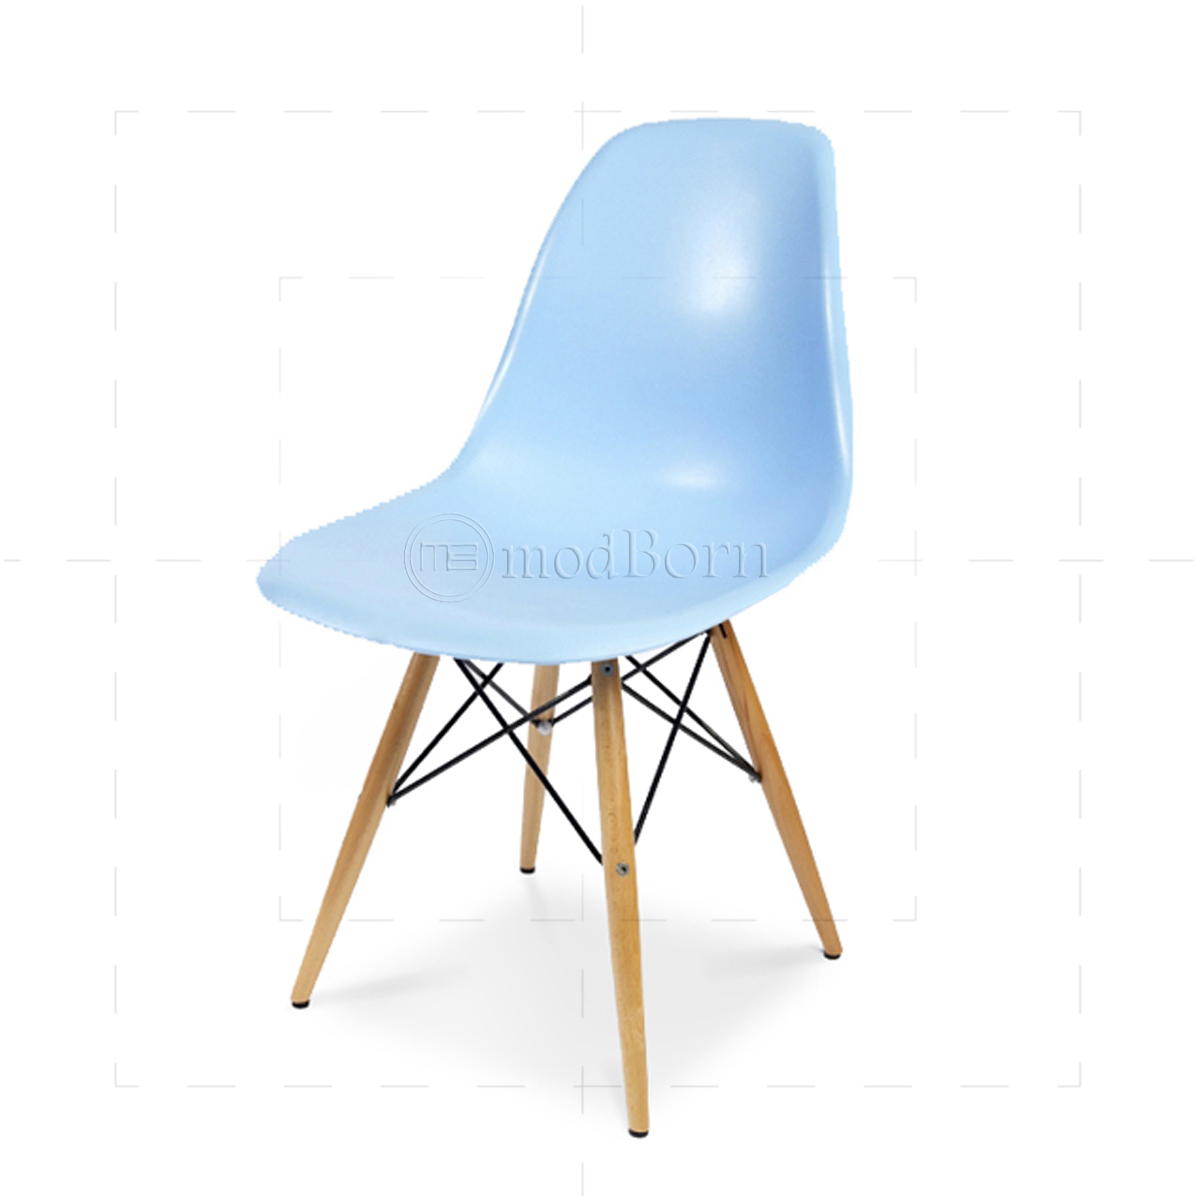 Eames style dining dsw chair blue - Copie chaise eames dsw ...